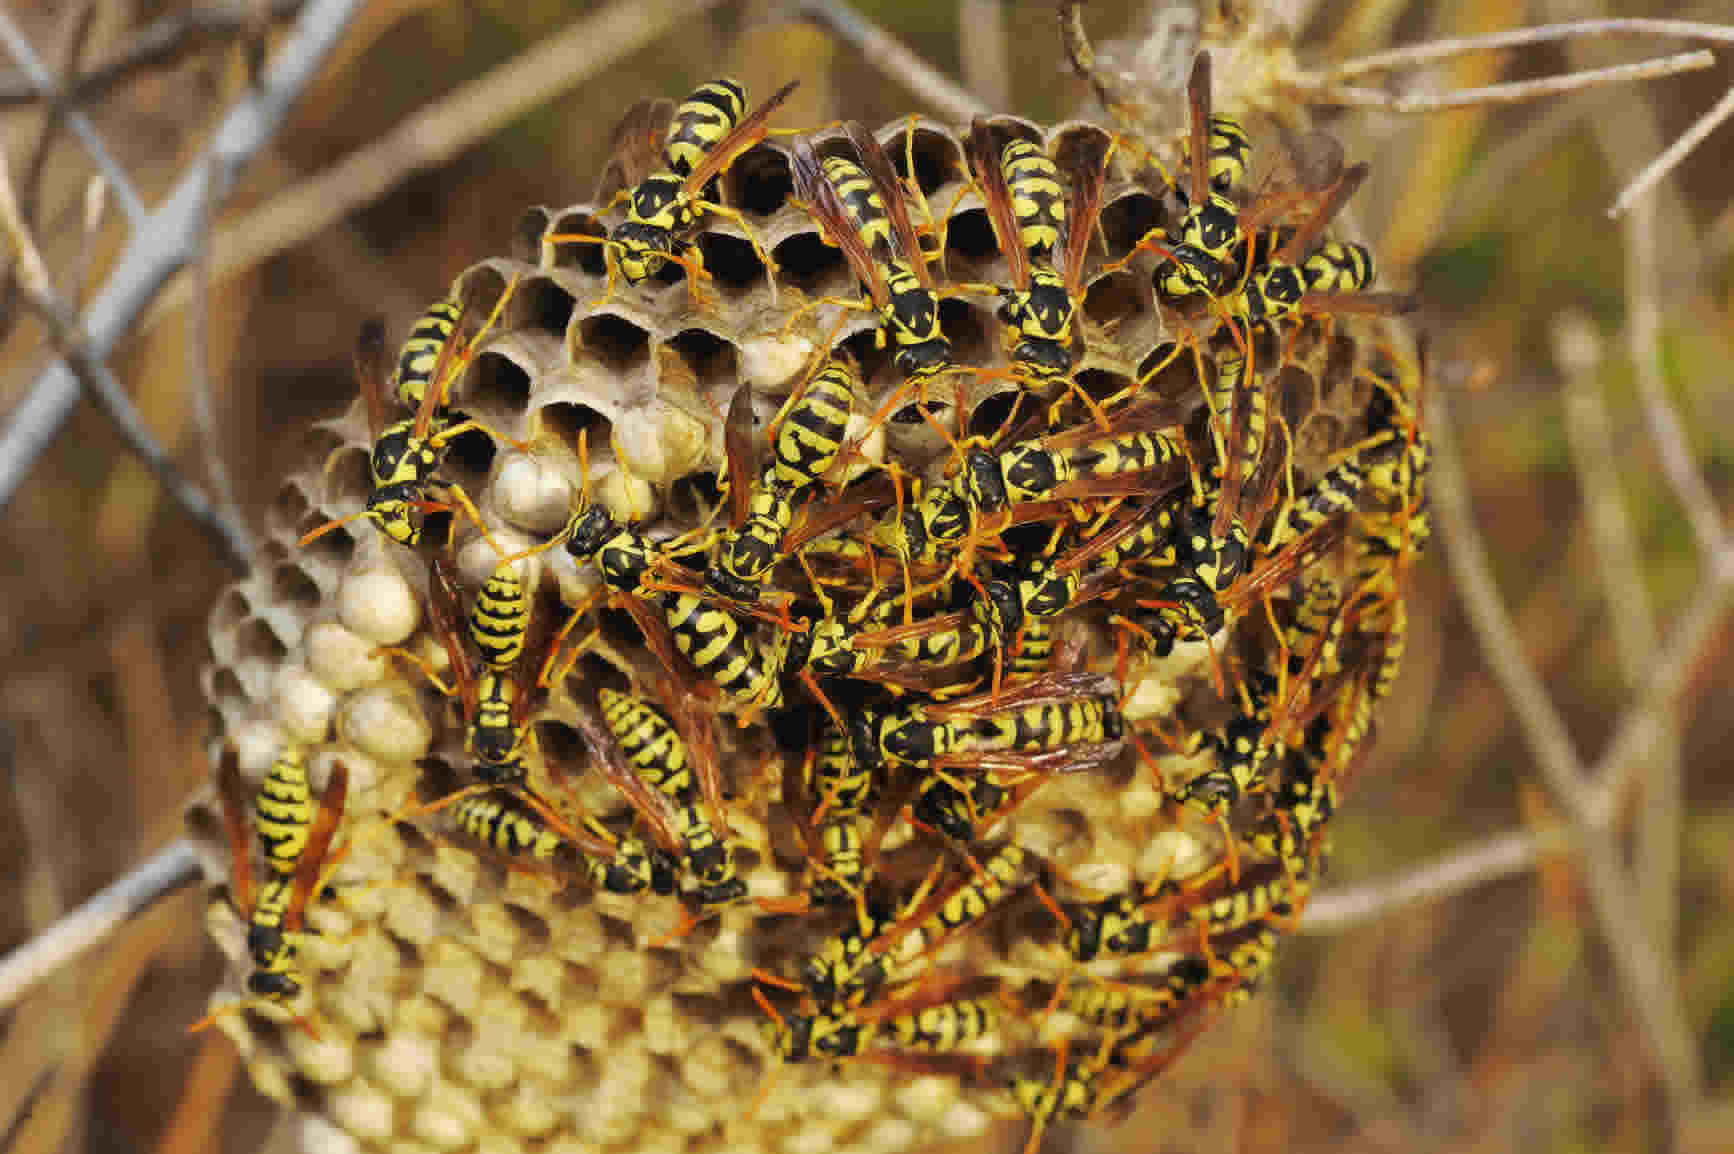 Wasp Nest Images|Images Of Wasp Nests